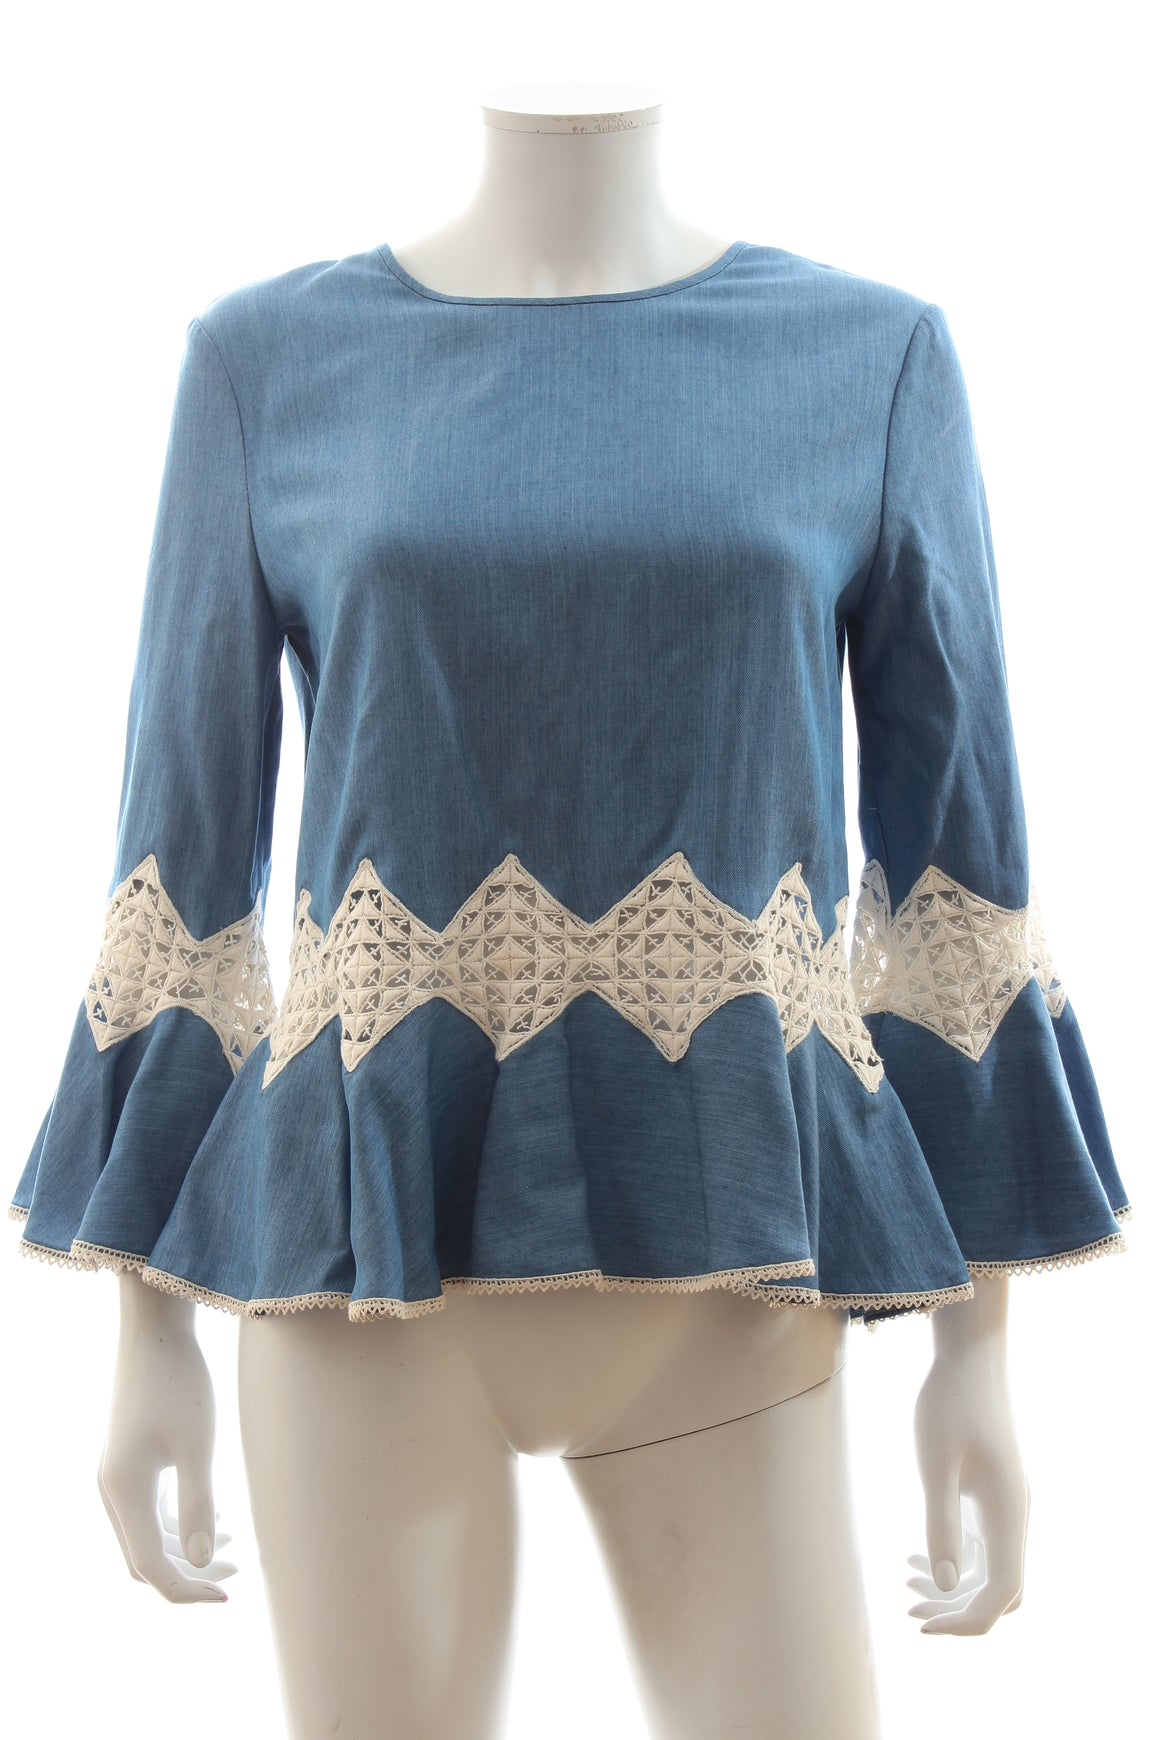 Jonathan Simkhai Lace Inset Chambray Top